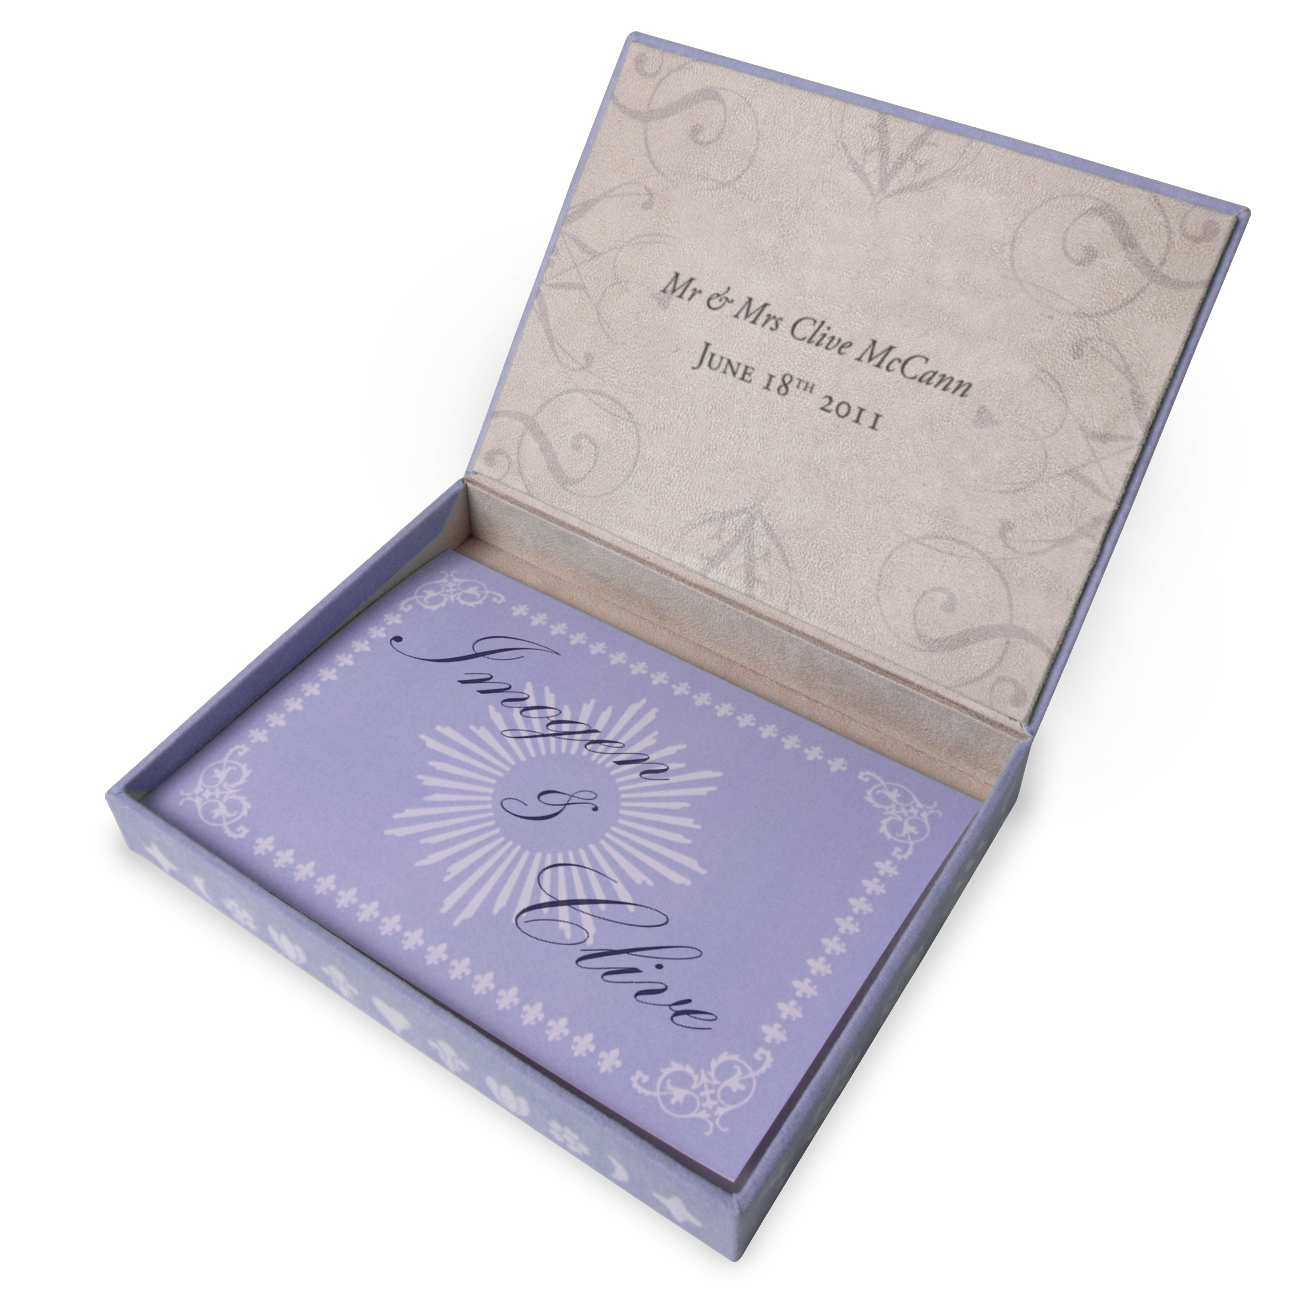 Open box with lilac exterior and ivory interior and text on the lid